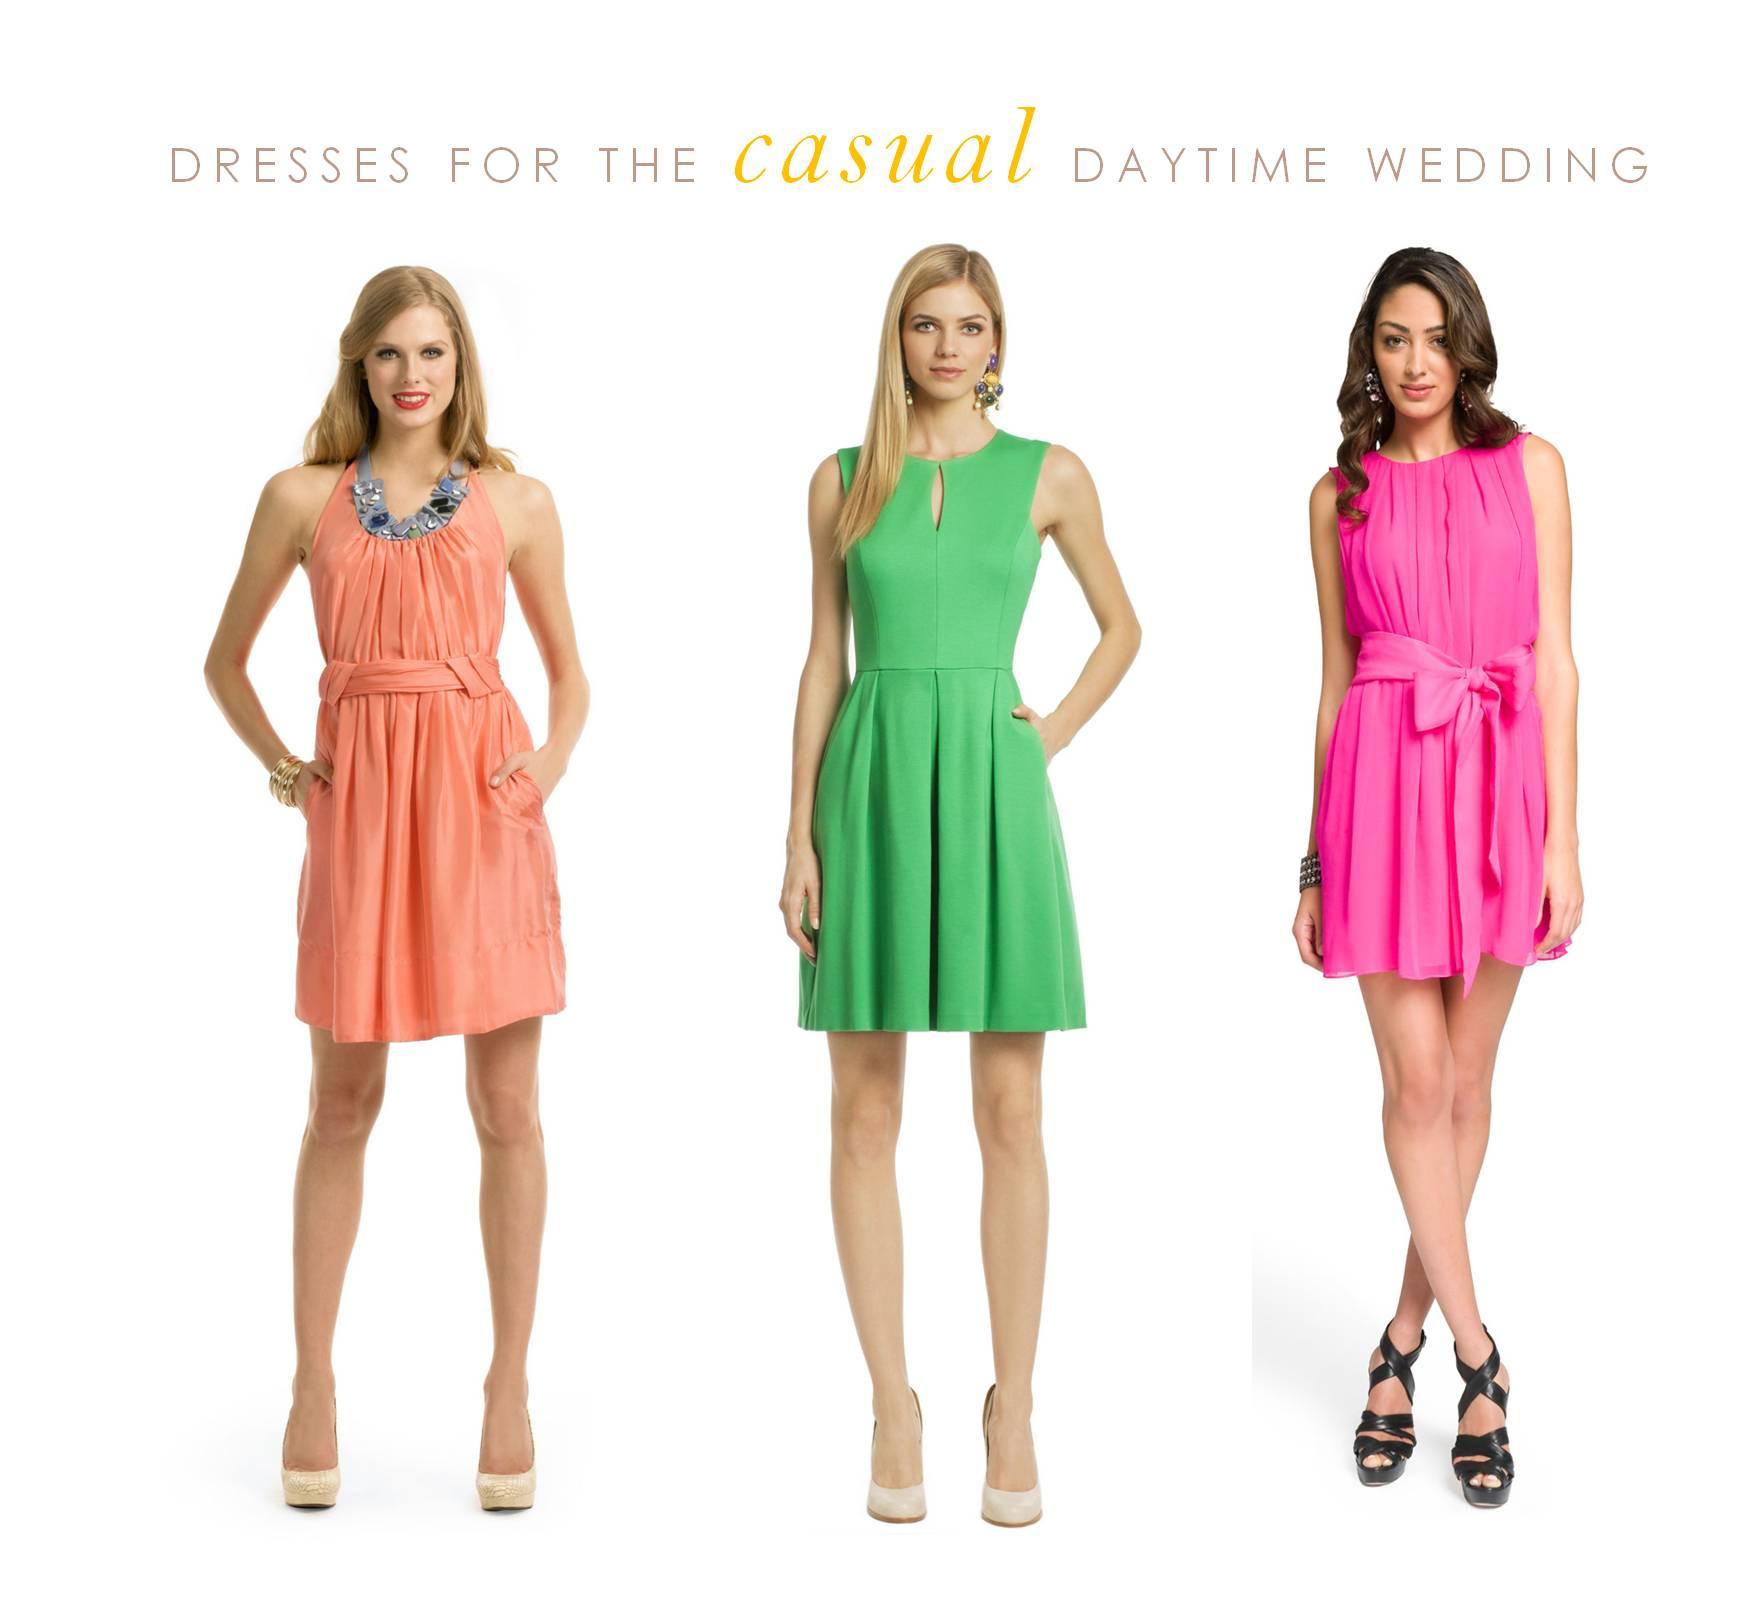 Daytime Casual Dresses